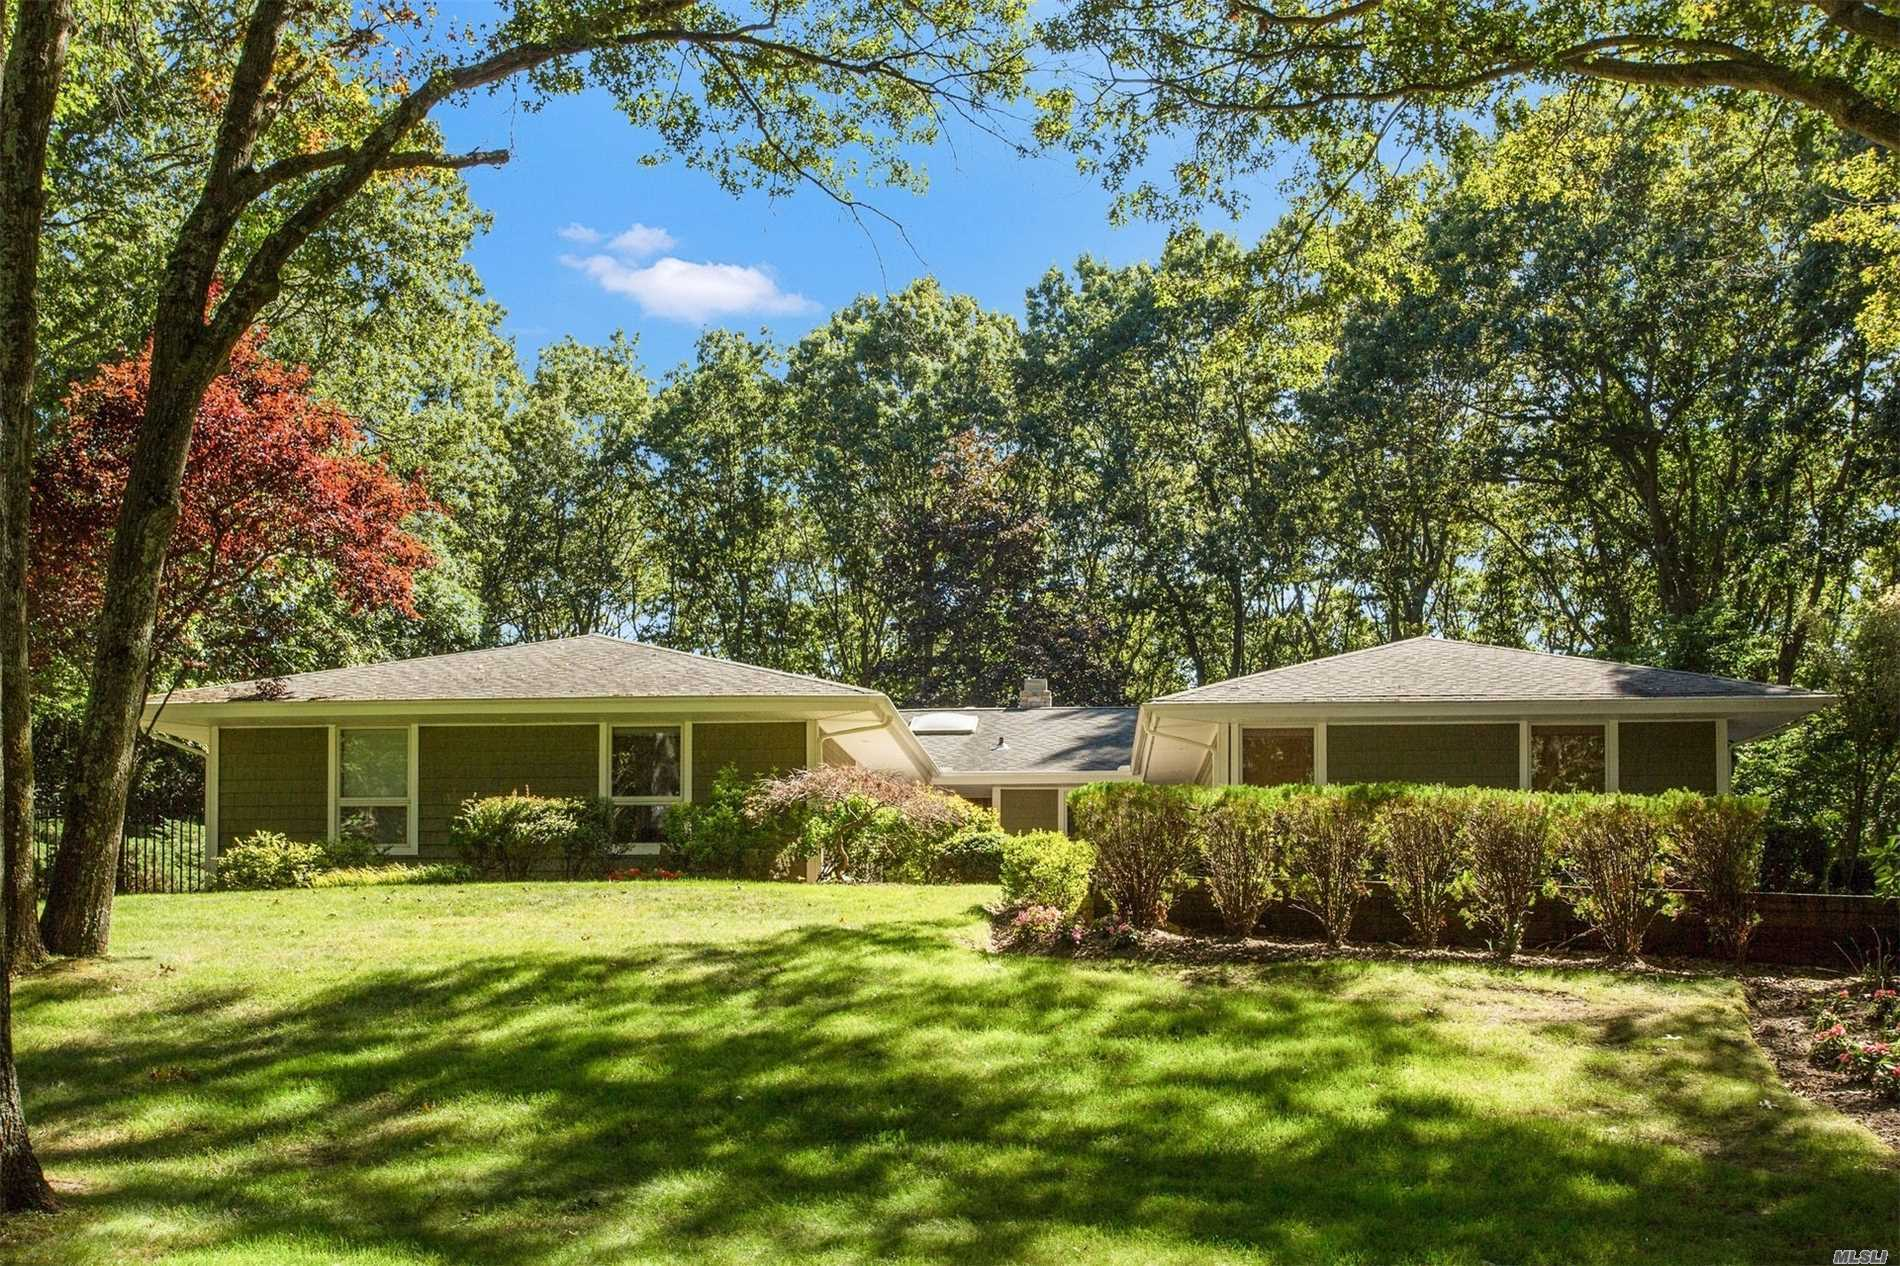 Gorgeous! Totally Renovated To Perfection! Expanded Sprawling Ranch! No Money Spared! Done By Top Designer A Showcase Of A Home!All The Bells & Whistles! New Custom Kitchen & Baths With Every Attention To Detail! Hi End Appliances! Wood Floors! Moldings! Granite! Onyx! New Siding! New Windows With Dramatic Views Of Picture Perfect Property! Great Location! Finished Basement & More! Strathmore Pool/Tennis Community! A Gem Of A Home To Enjoy!